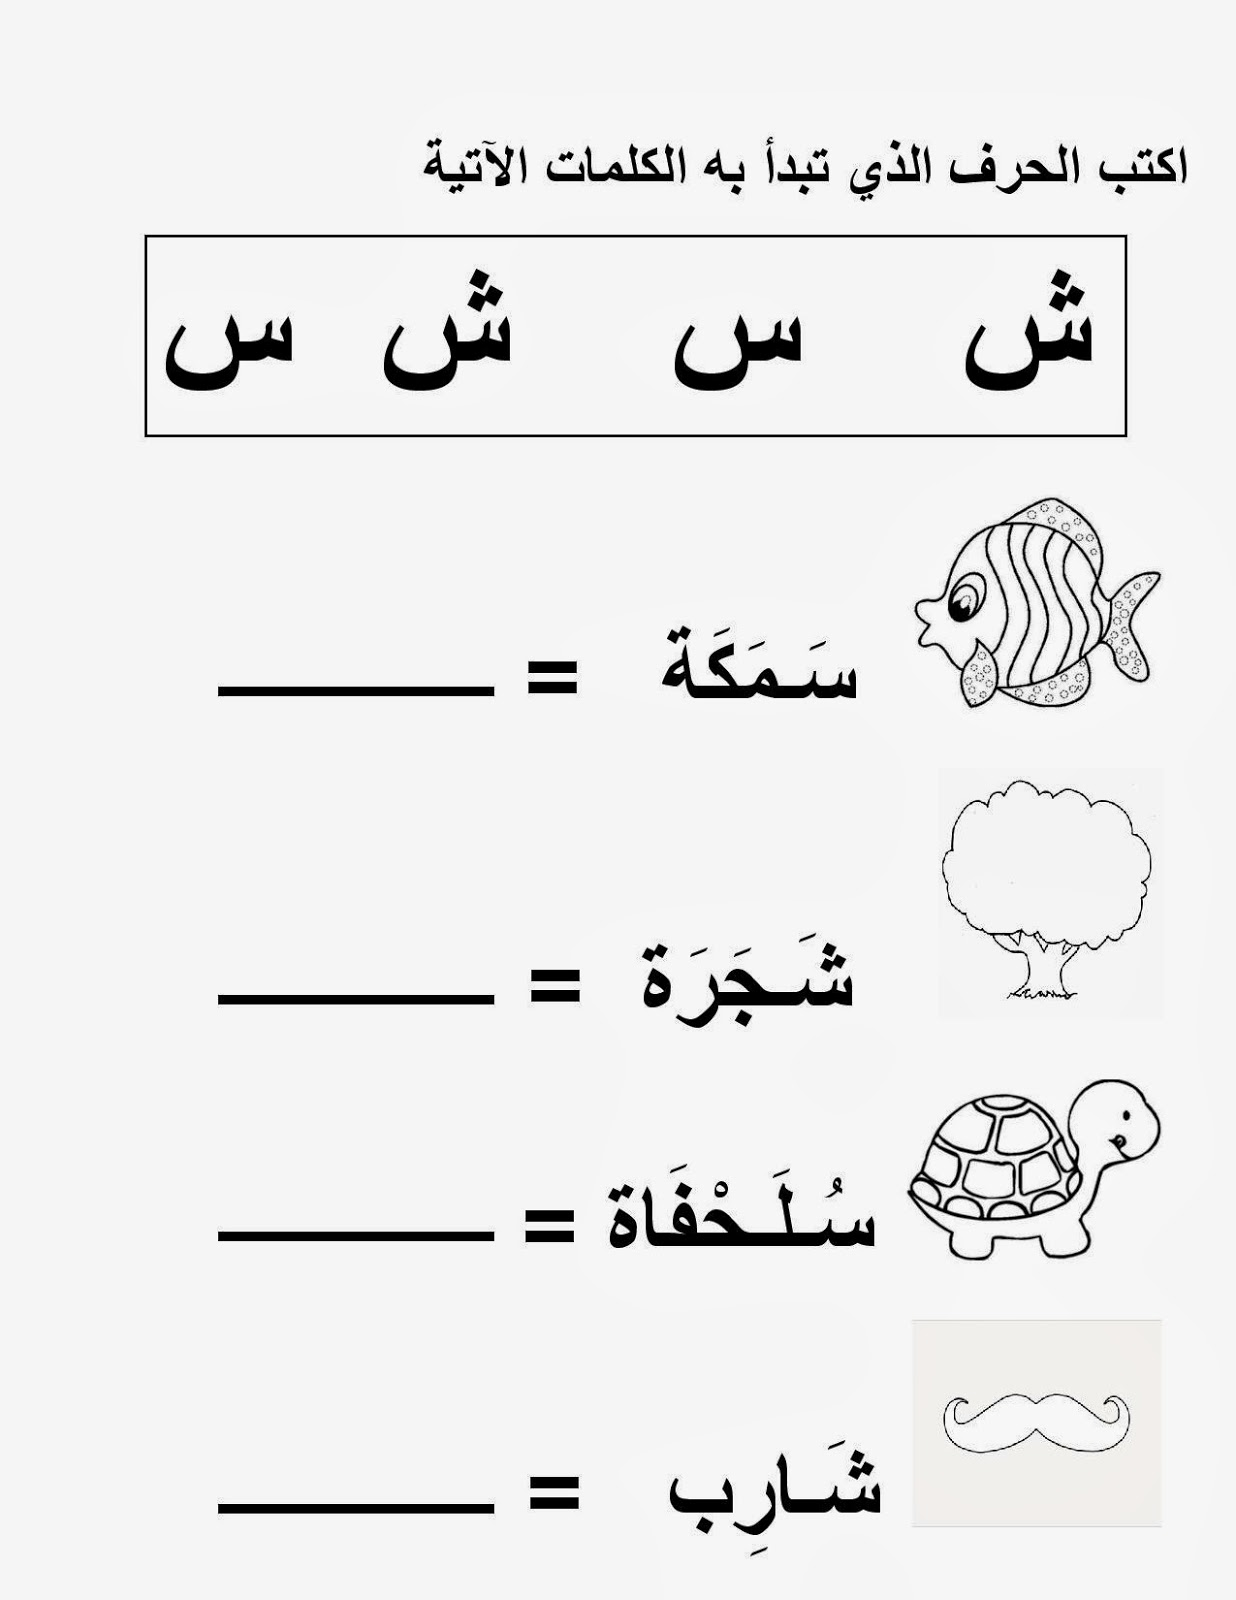 mikahaziq: Alif Ba Ta / Arabic Letters Worksheet for Kids ...